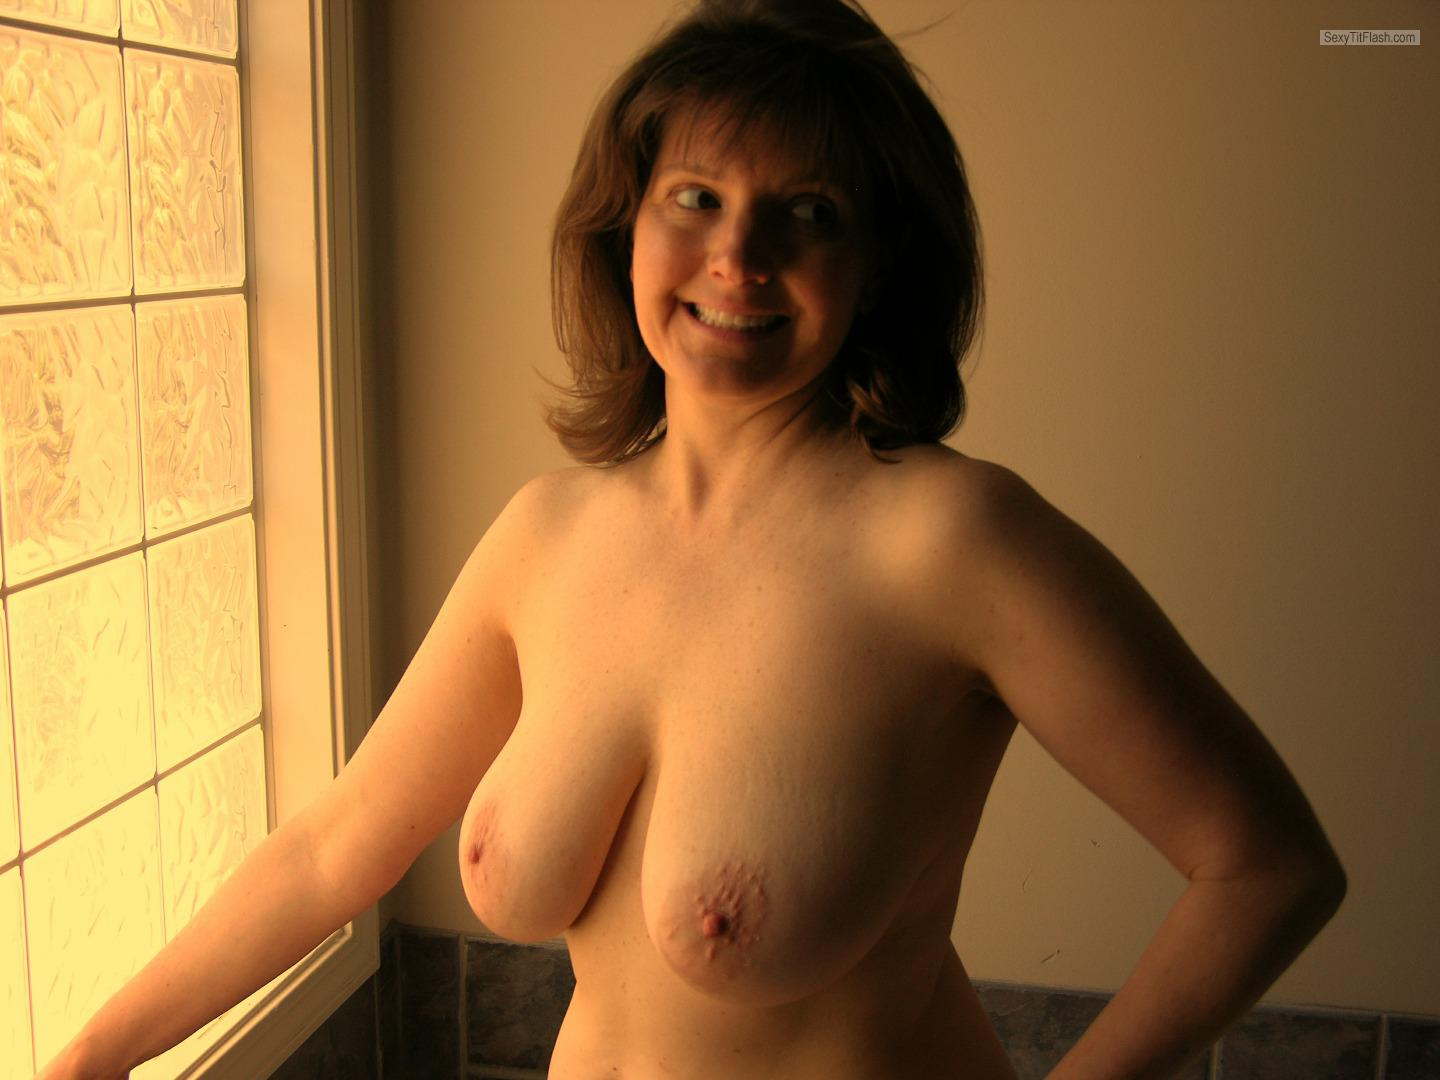 Tit Flash: My Big Tits - Topless Sexy Whore Rhea from United States